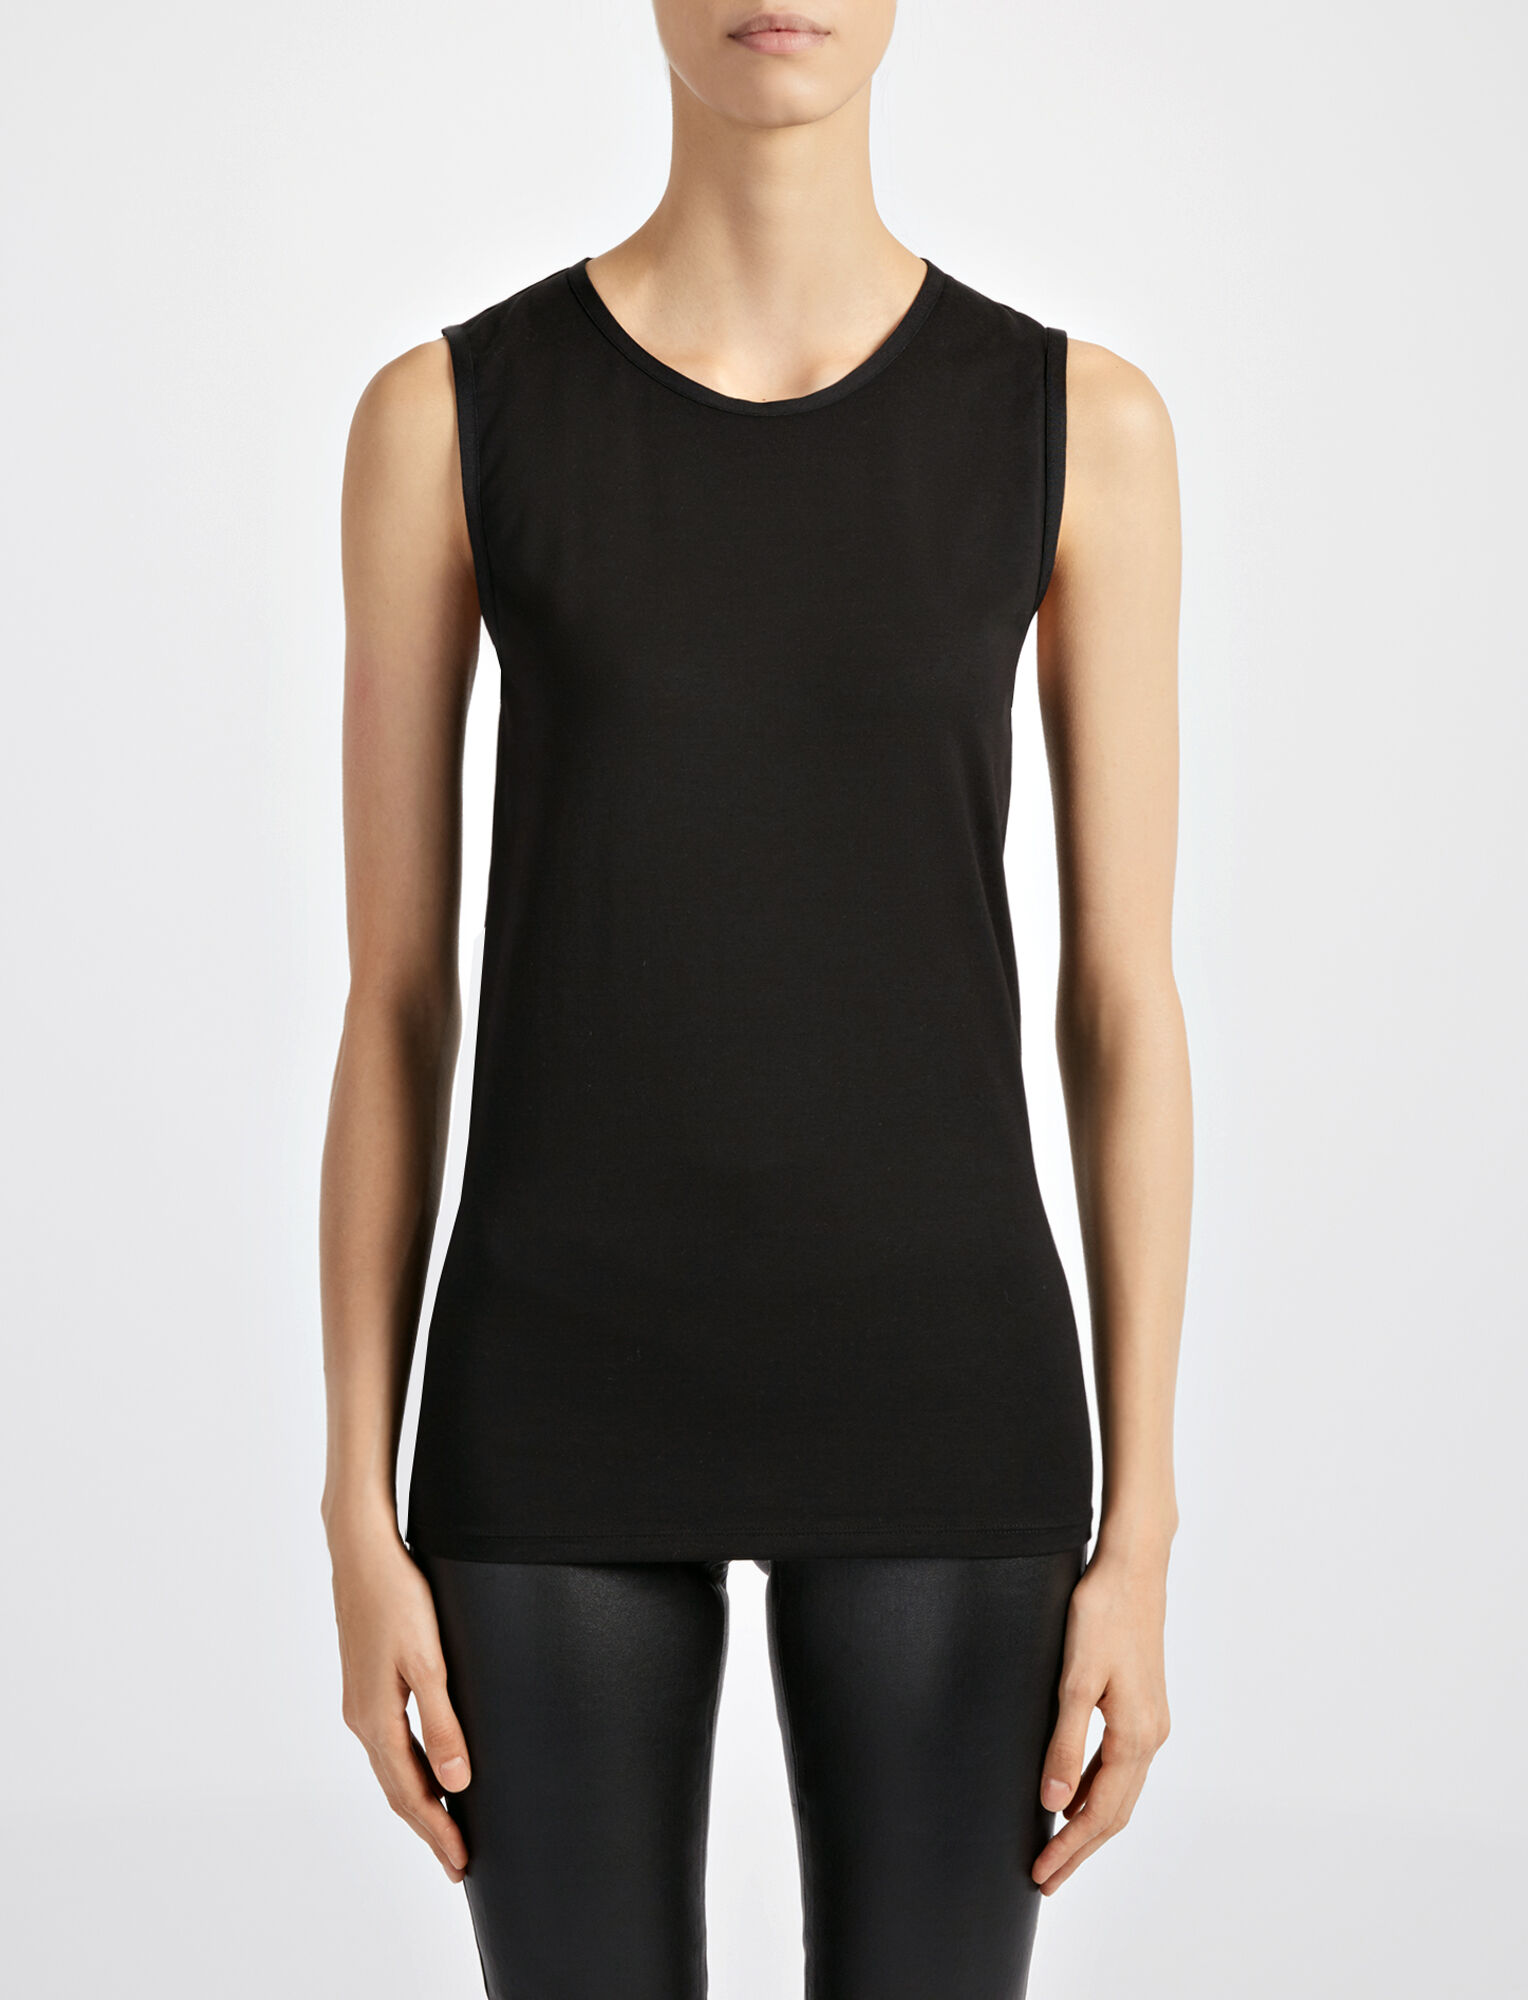 Joseph, Cotton Lyocell Stretch Tank, in BLACK